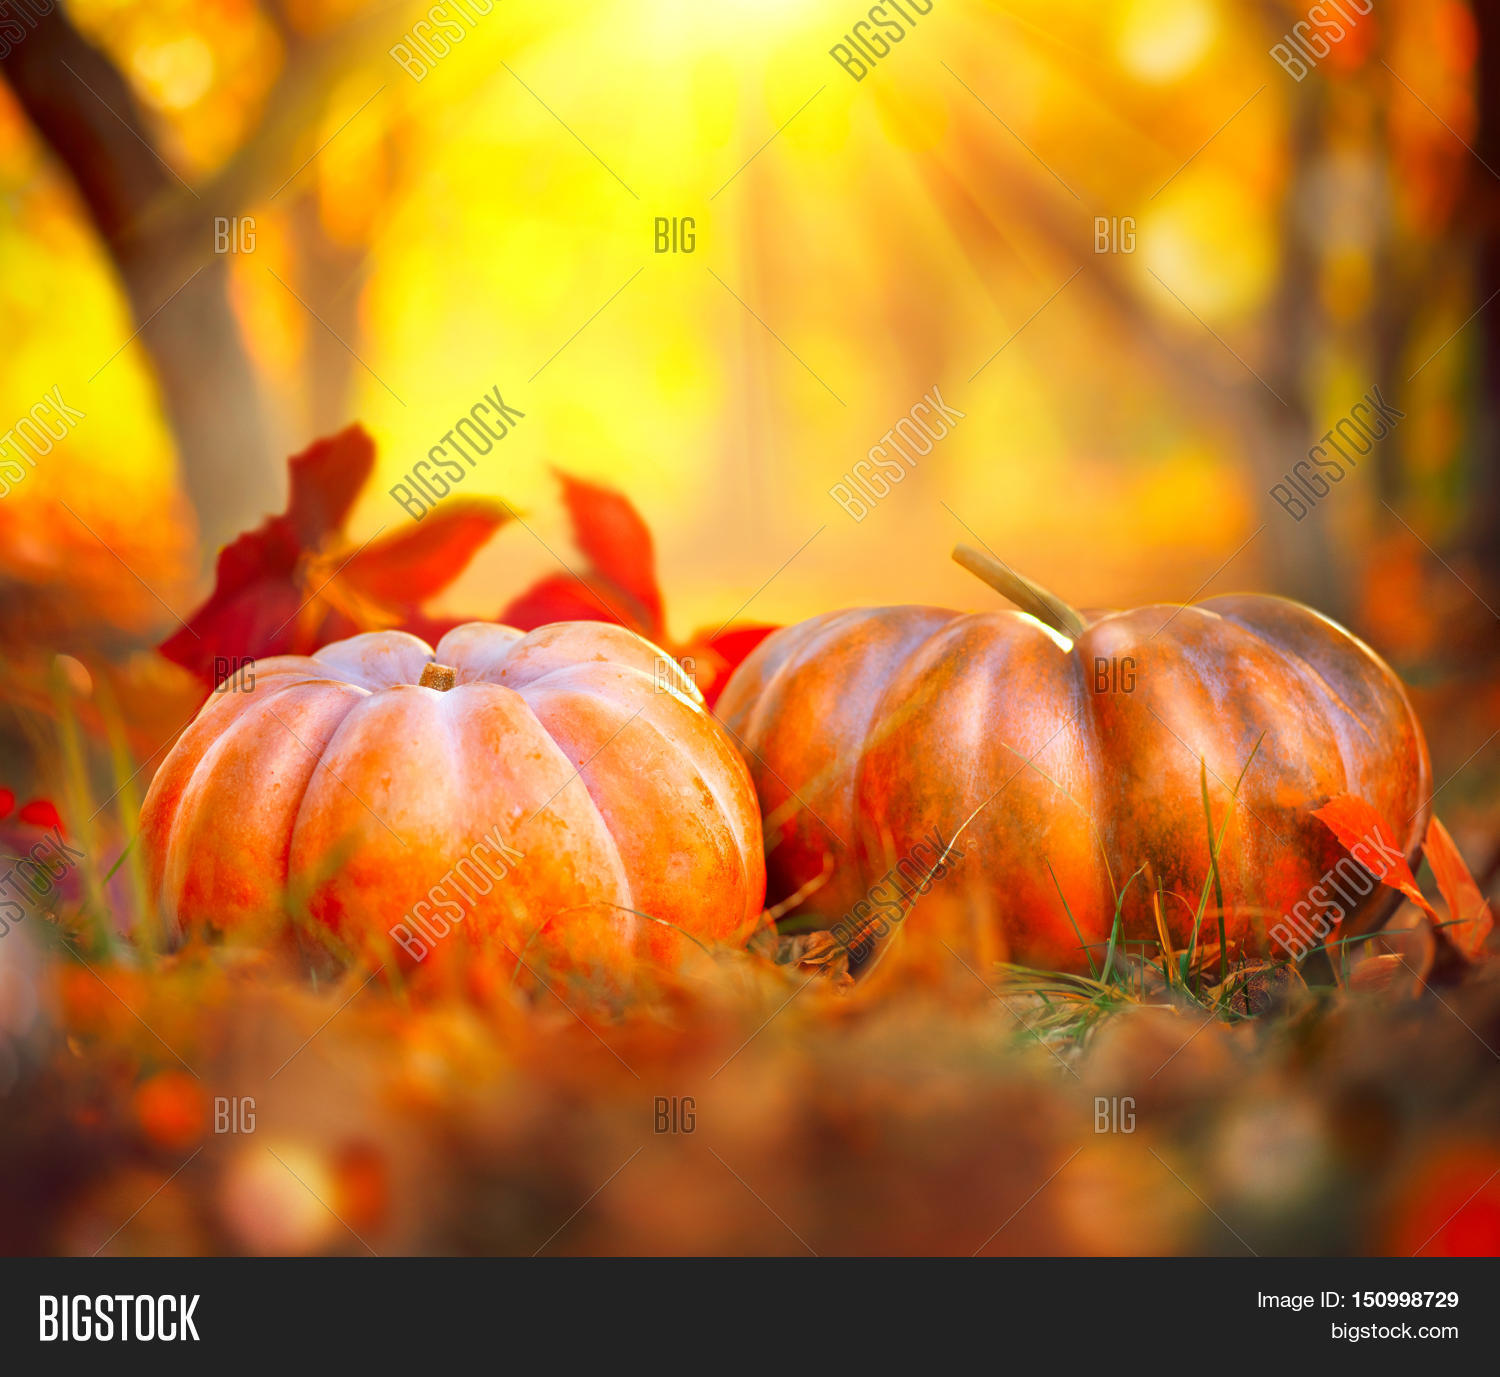 Autumn Halloween Image Photo Free Trial Bigstock